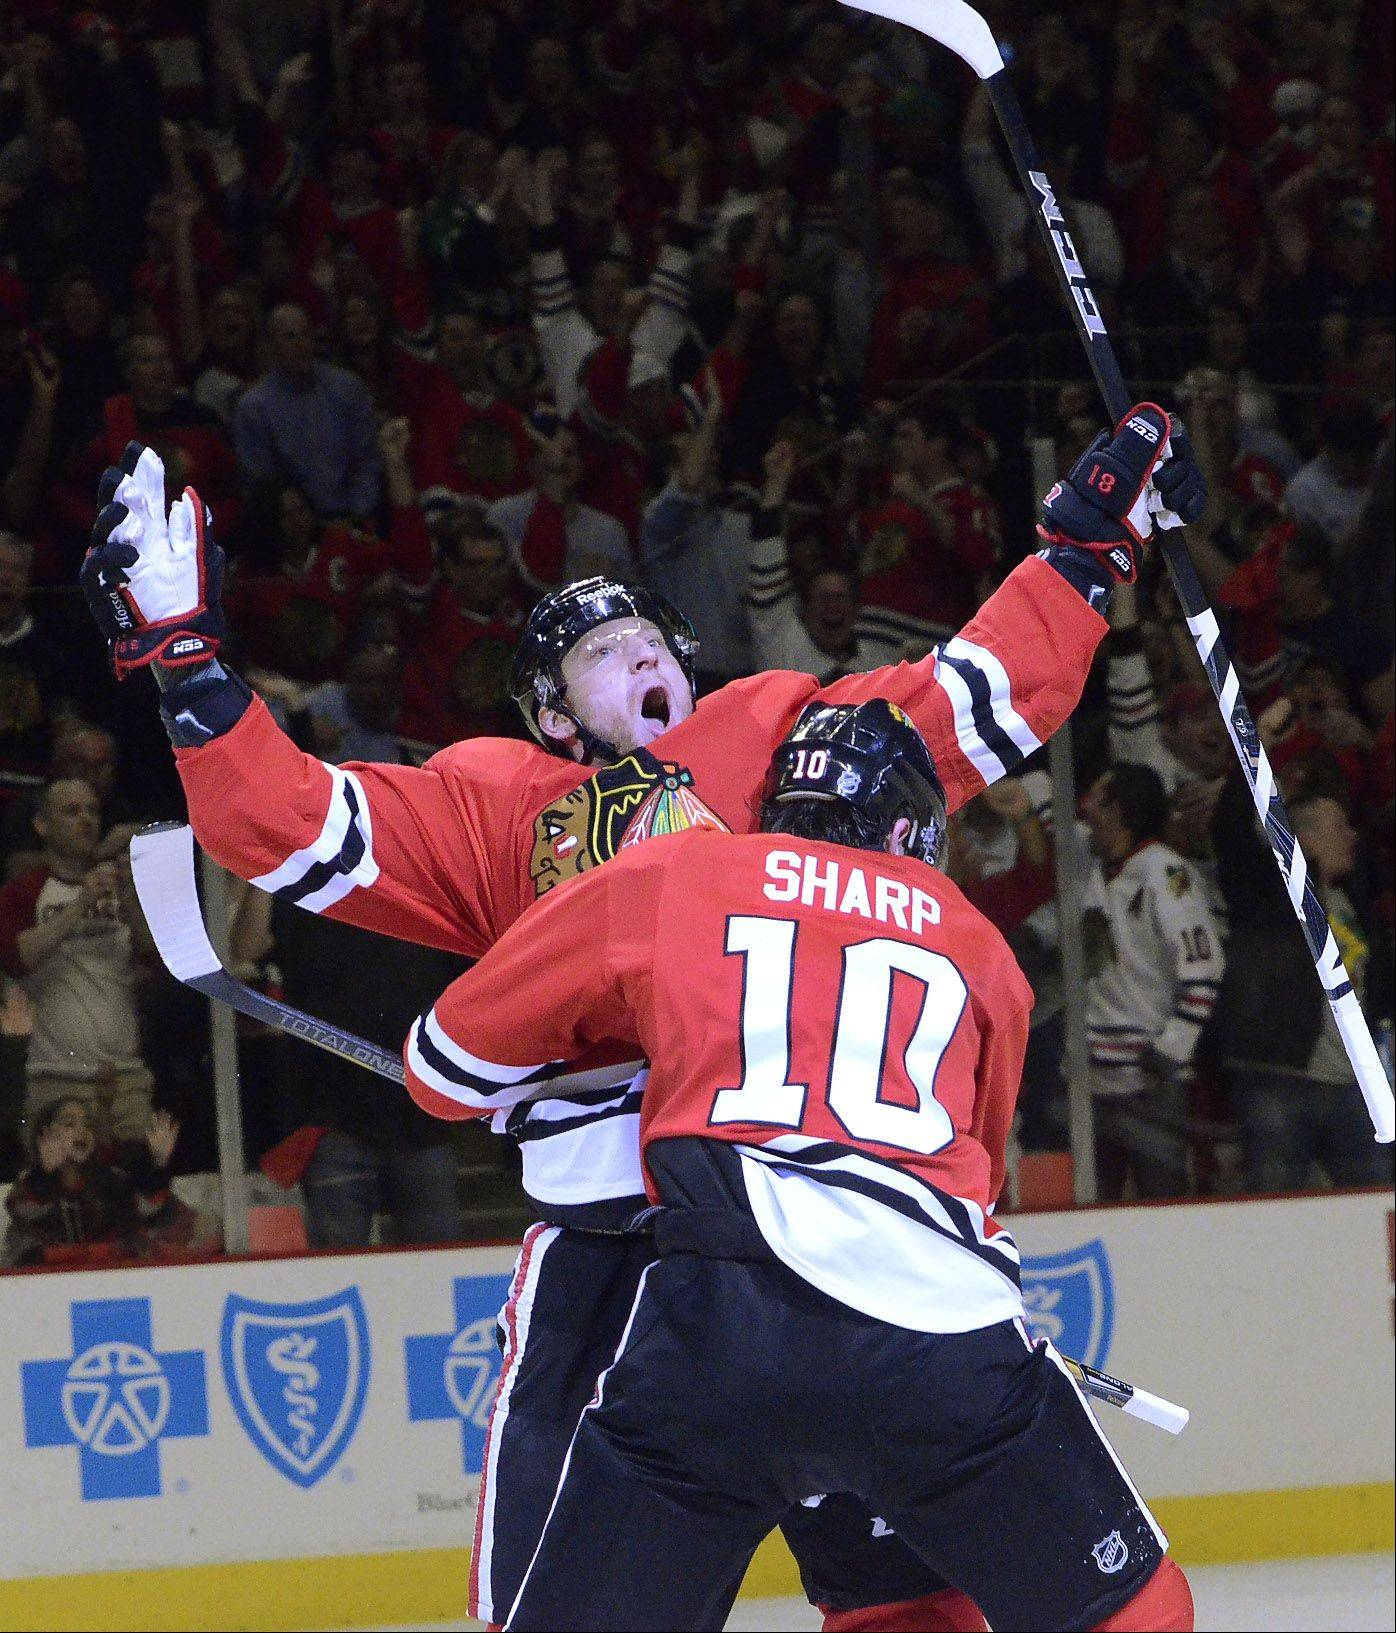 Marian Hossa celebrates after scoring on a power play in first period action.